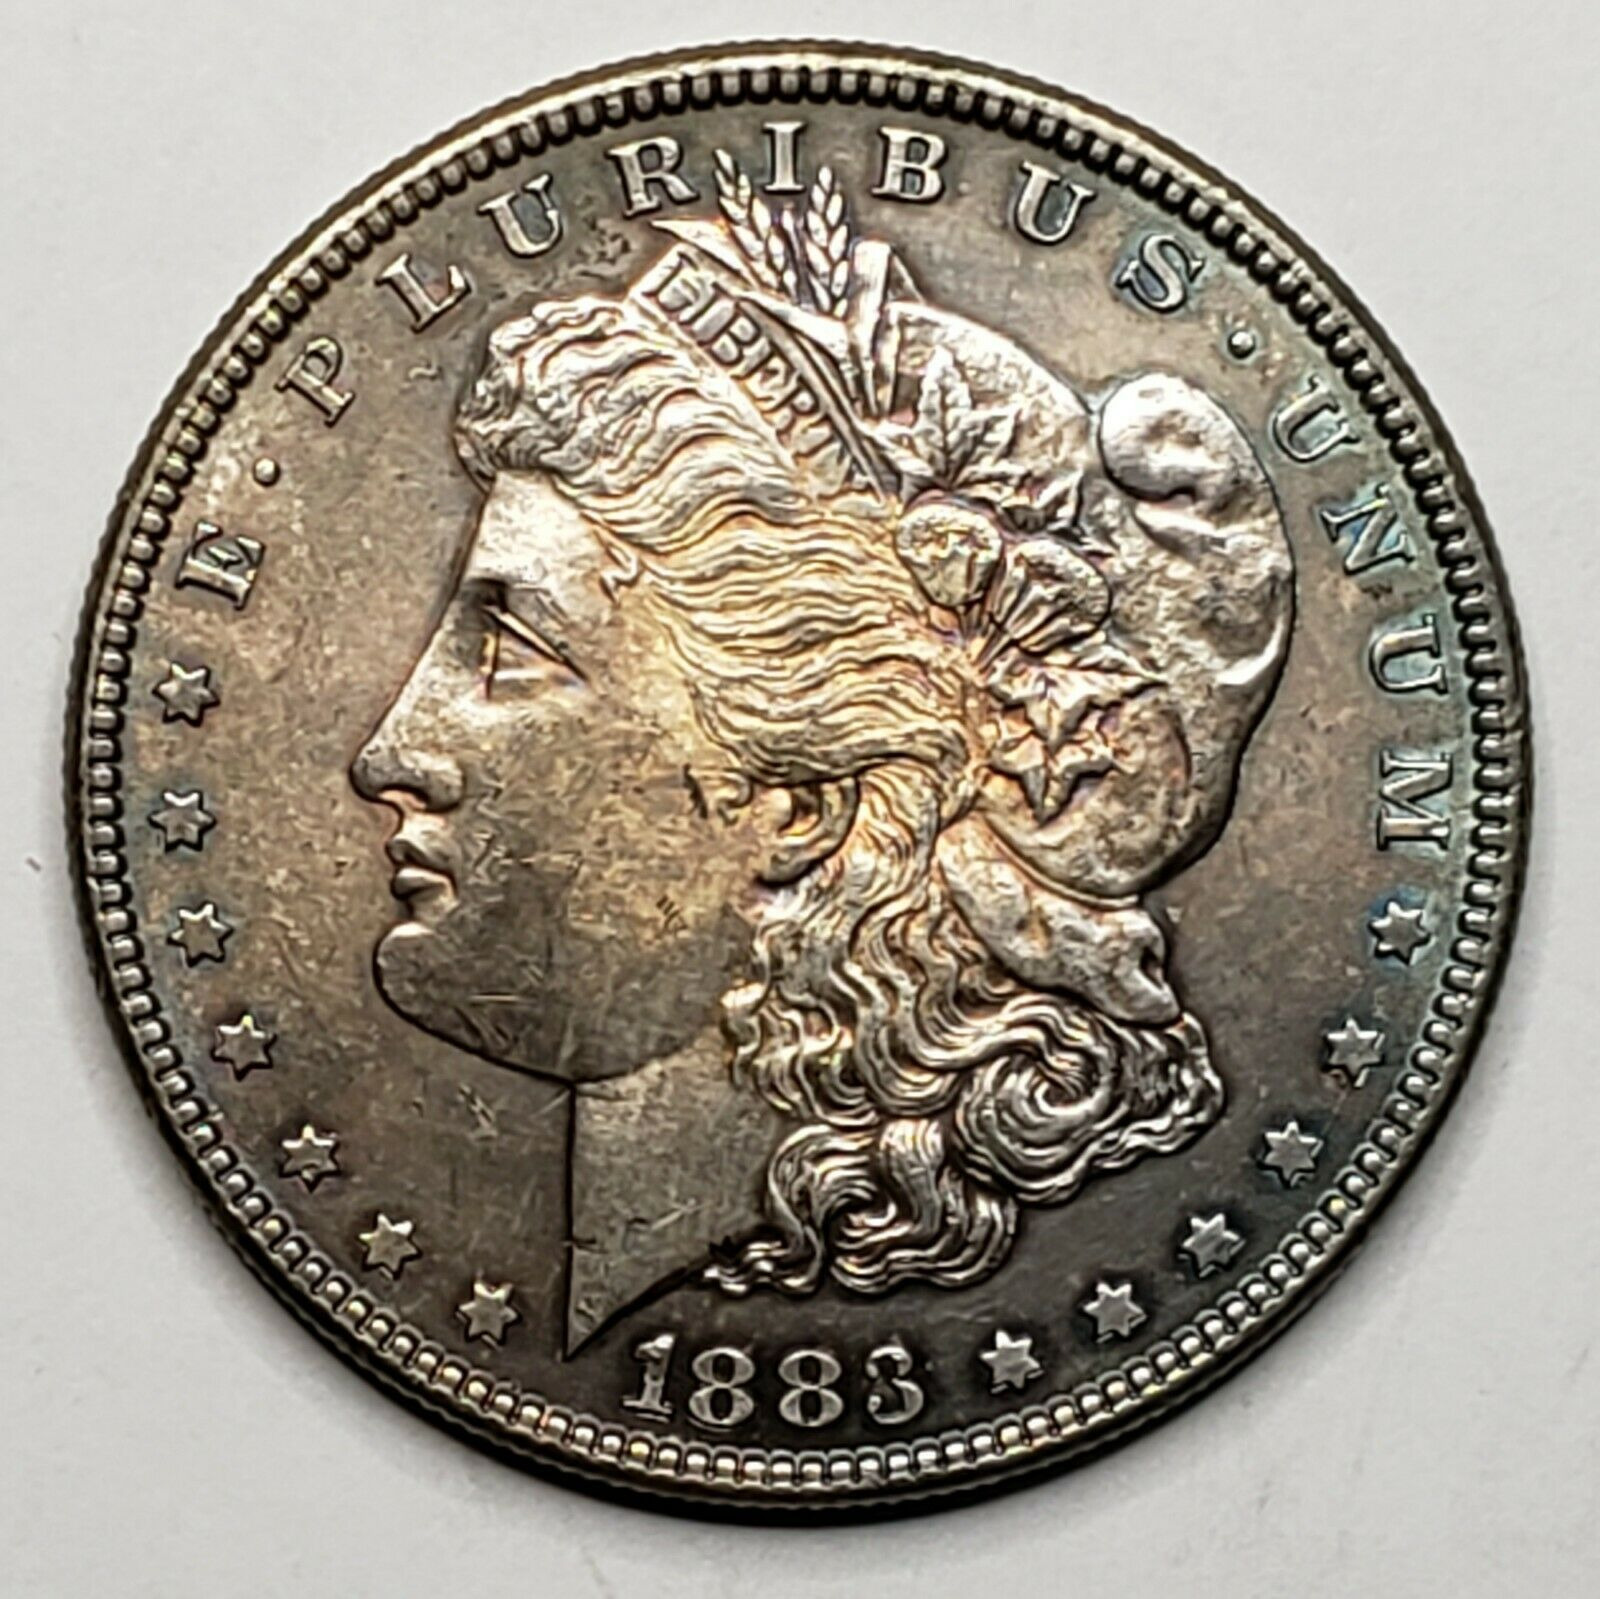 1883 MORGAN SILVER $1 DOLLAR Coin Lot# 519-25